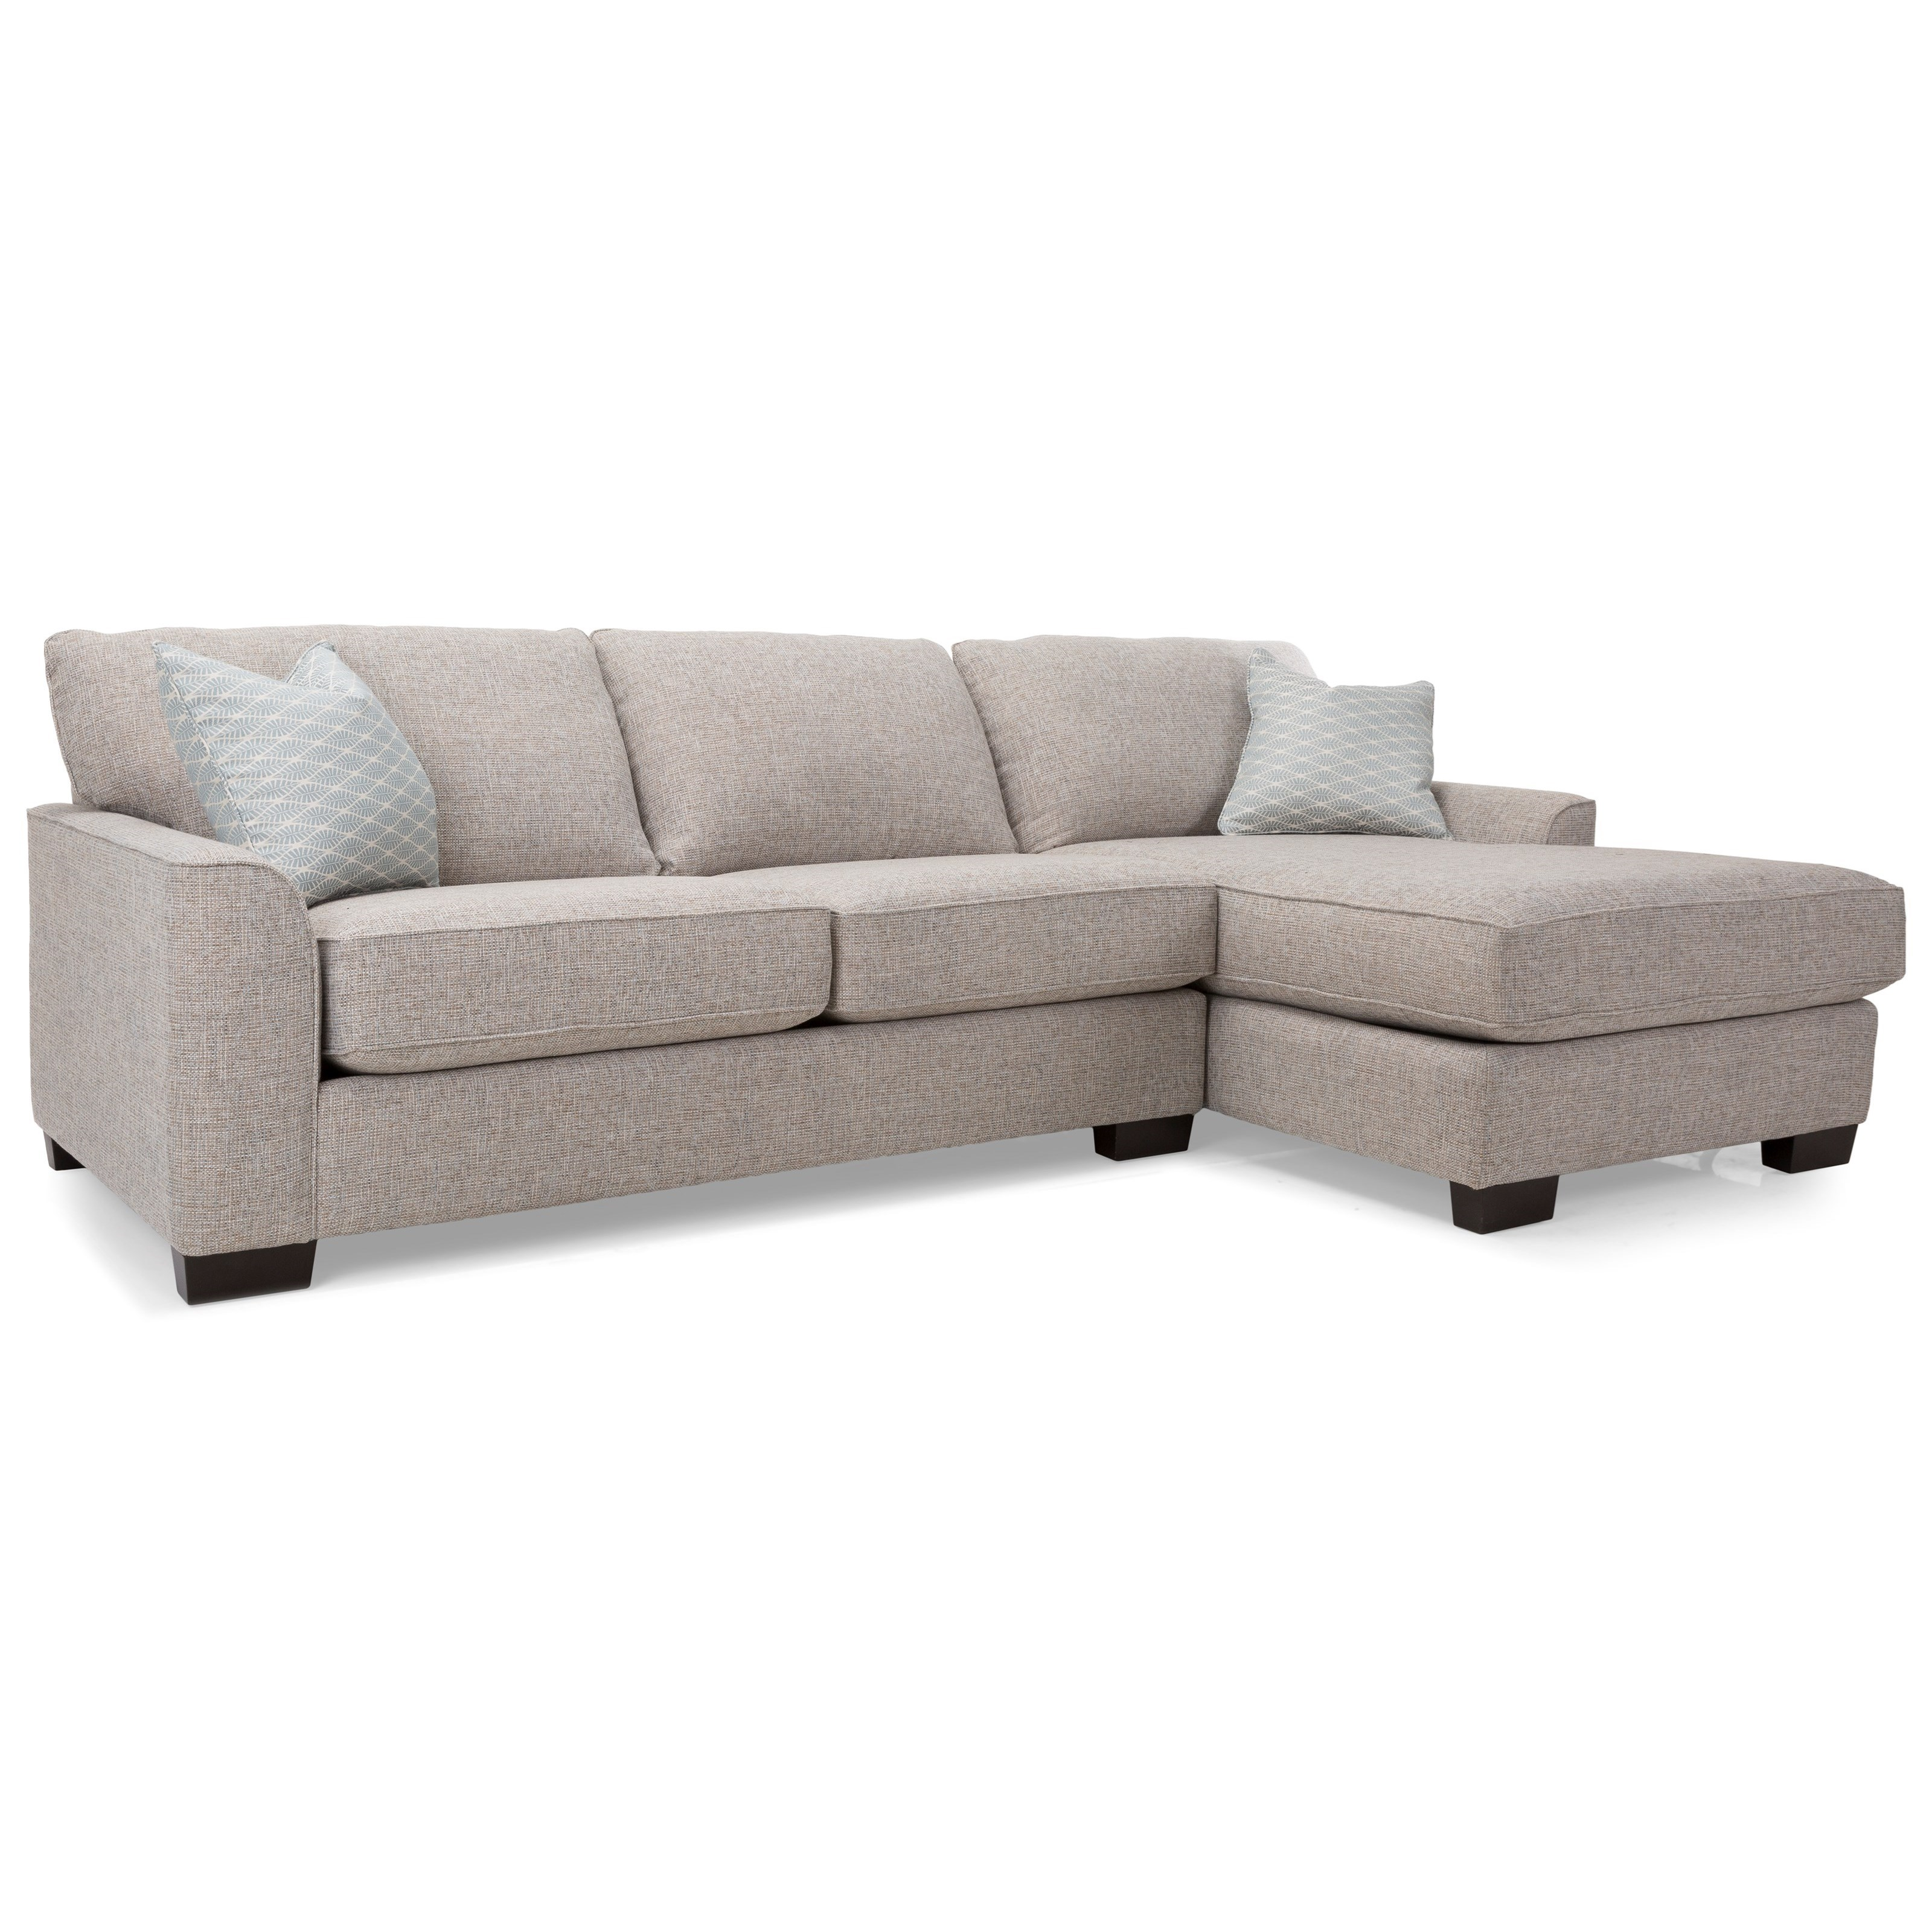 2786 Chaise Sofa Sectional by Decor-Rest at Rooms for Less